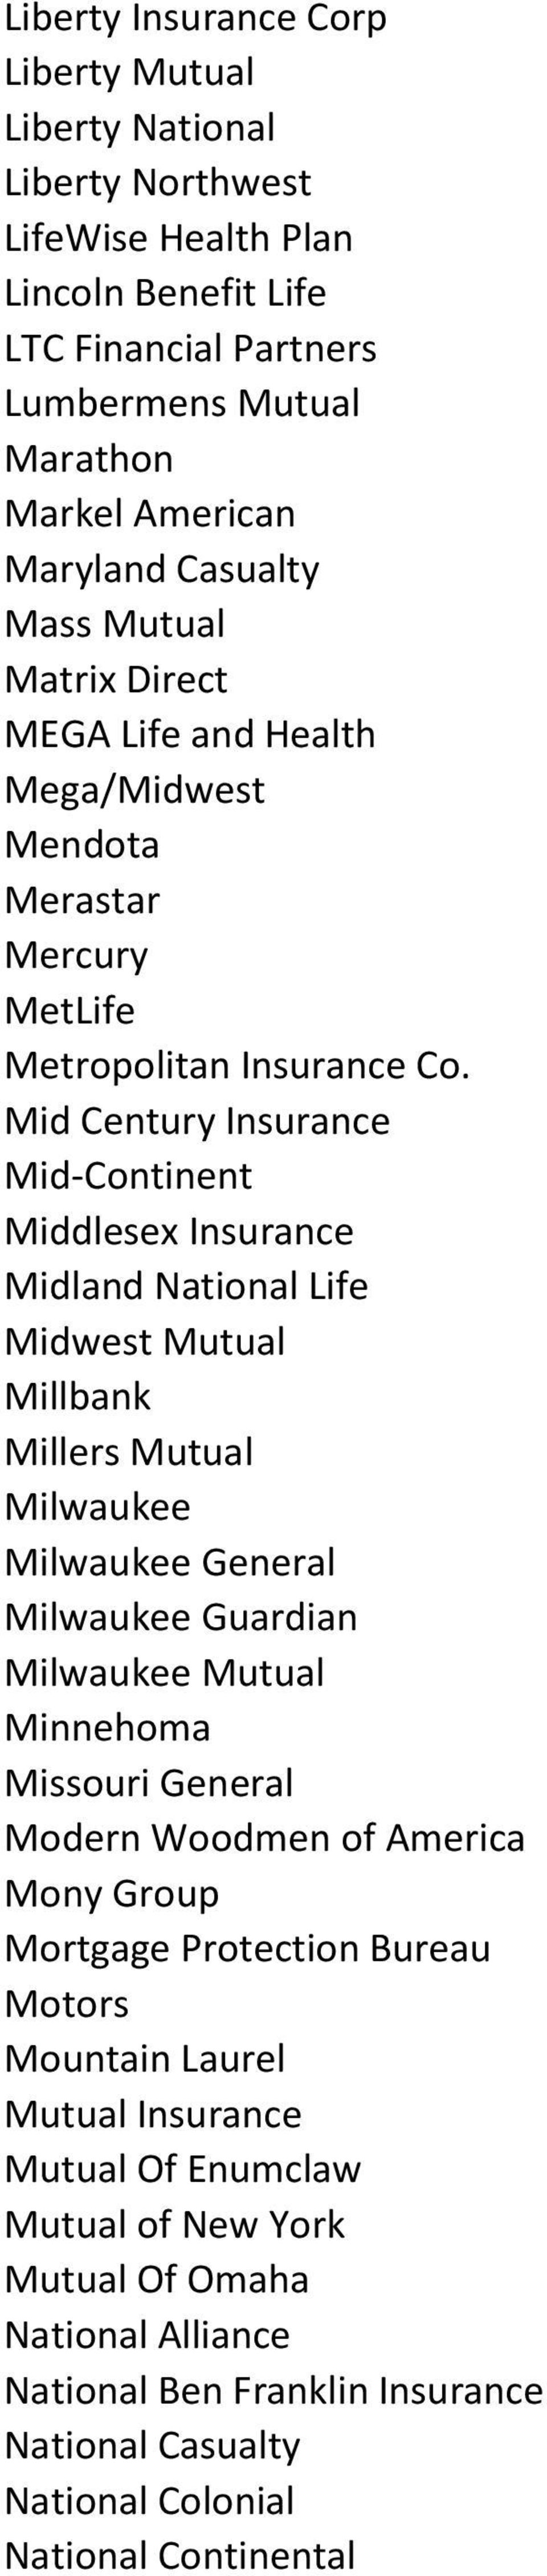 Mid Century Insurance Mid-Continent Middlesex Insurance Midland National Life Midwest Mutual Millbank Millers Mutual Milwaukee Milwaukee General Milwaukee Guardian Milwaukee Mutual Minnehoma